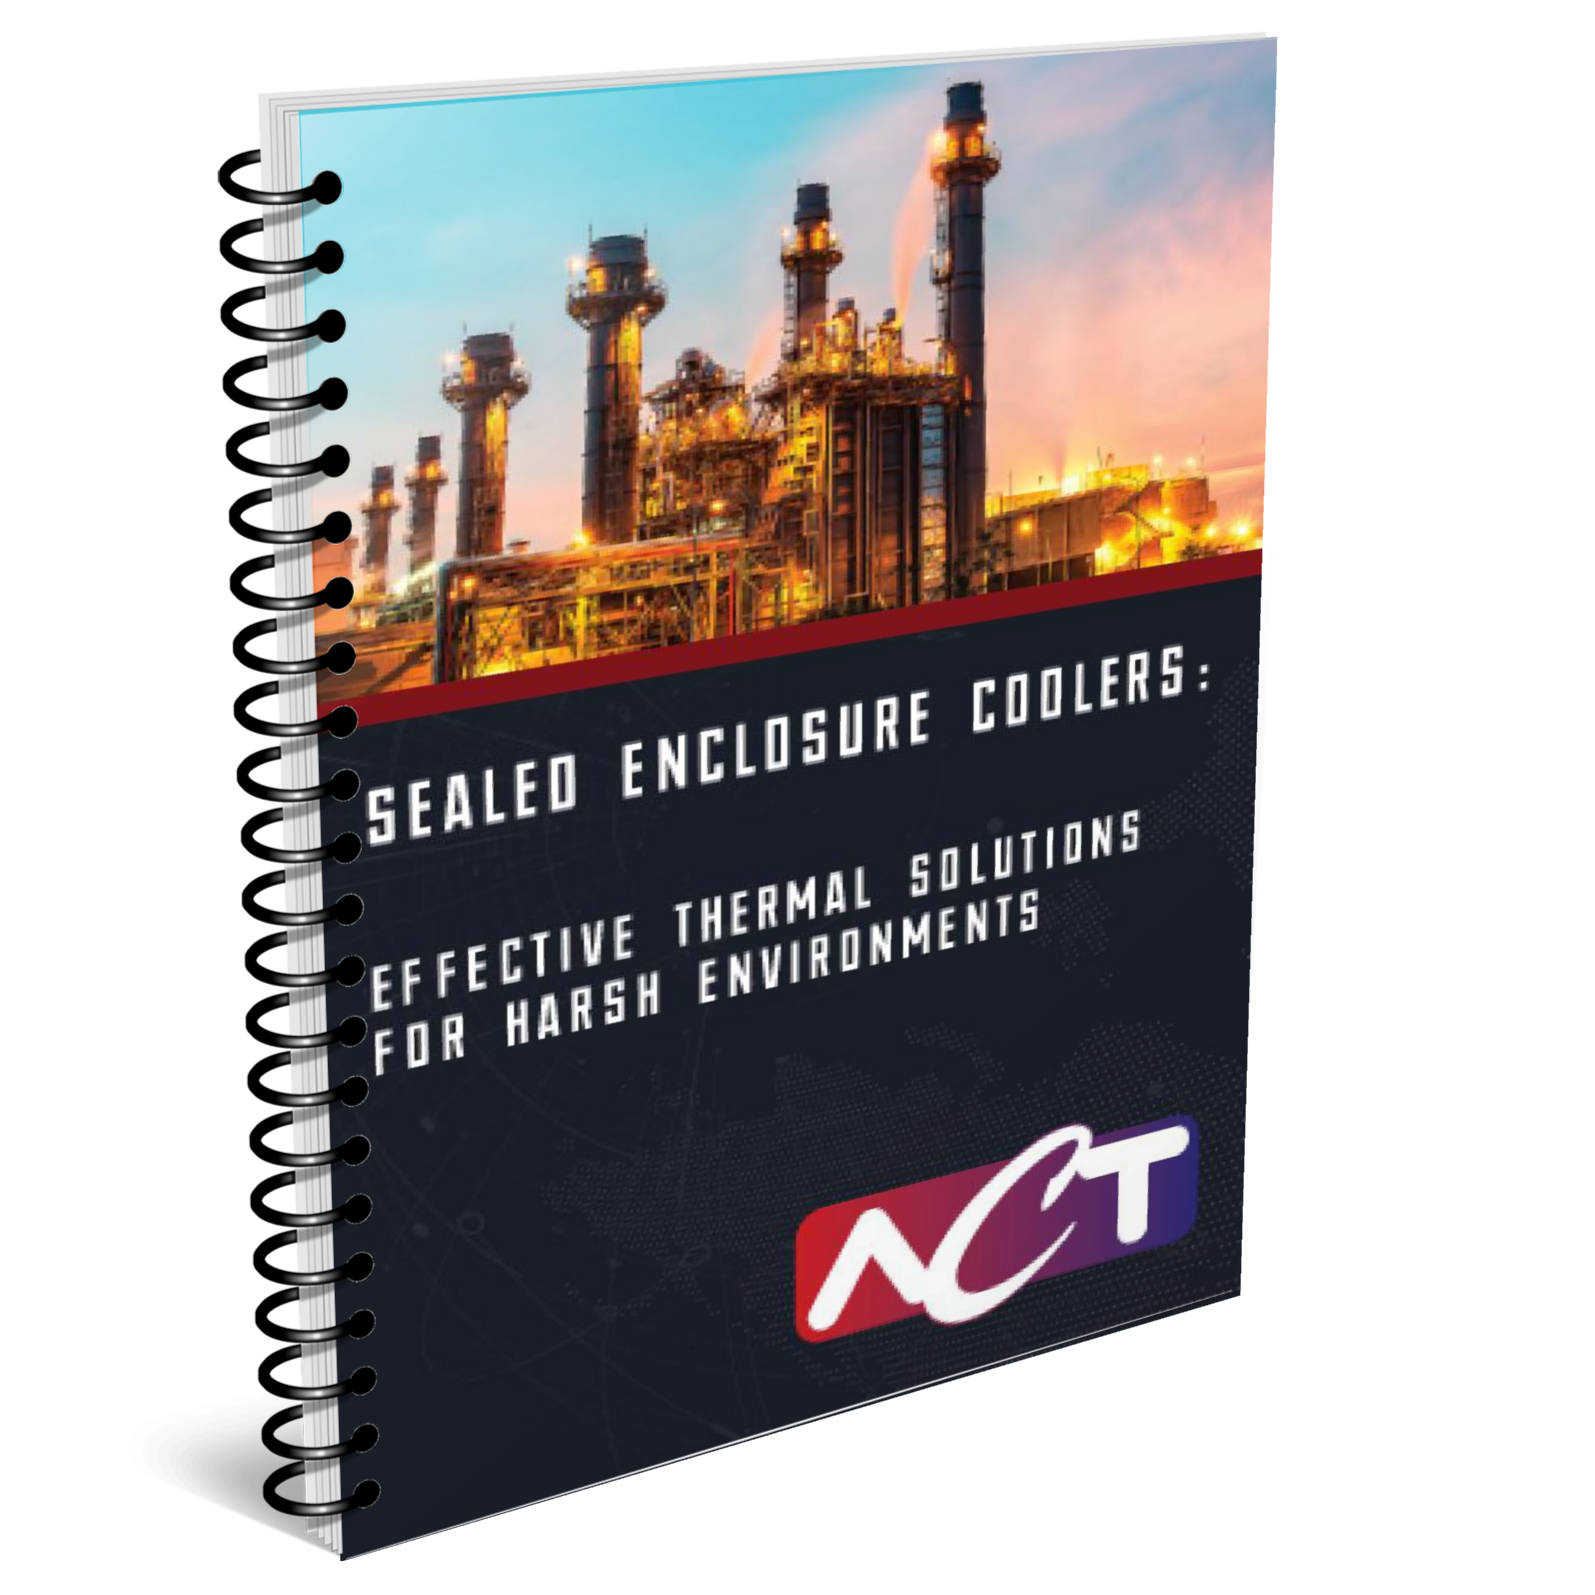 Sealed Enclosure Coolers: Effective Thermal Solutions for Harsh Environments eBook